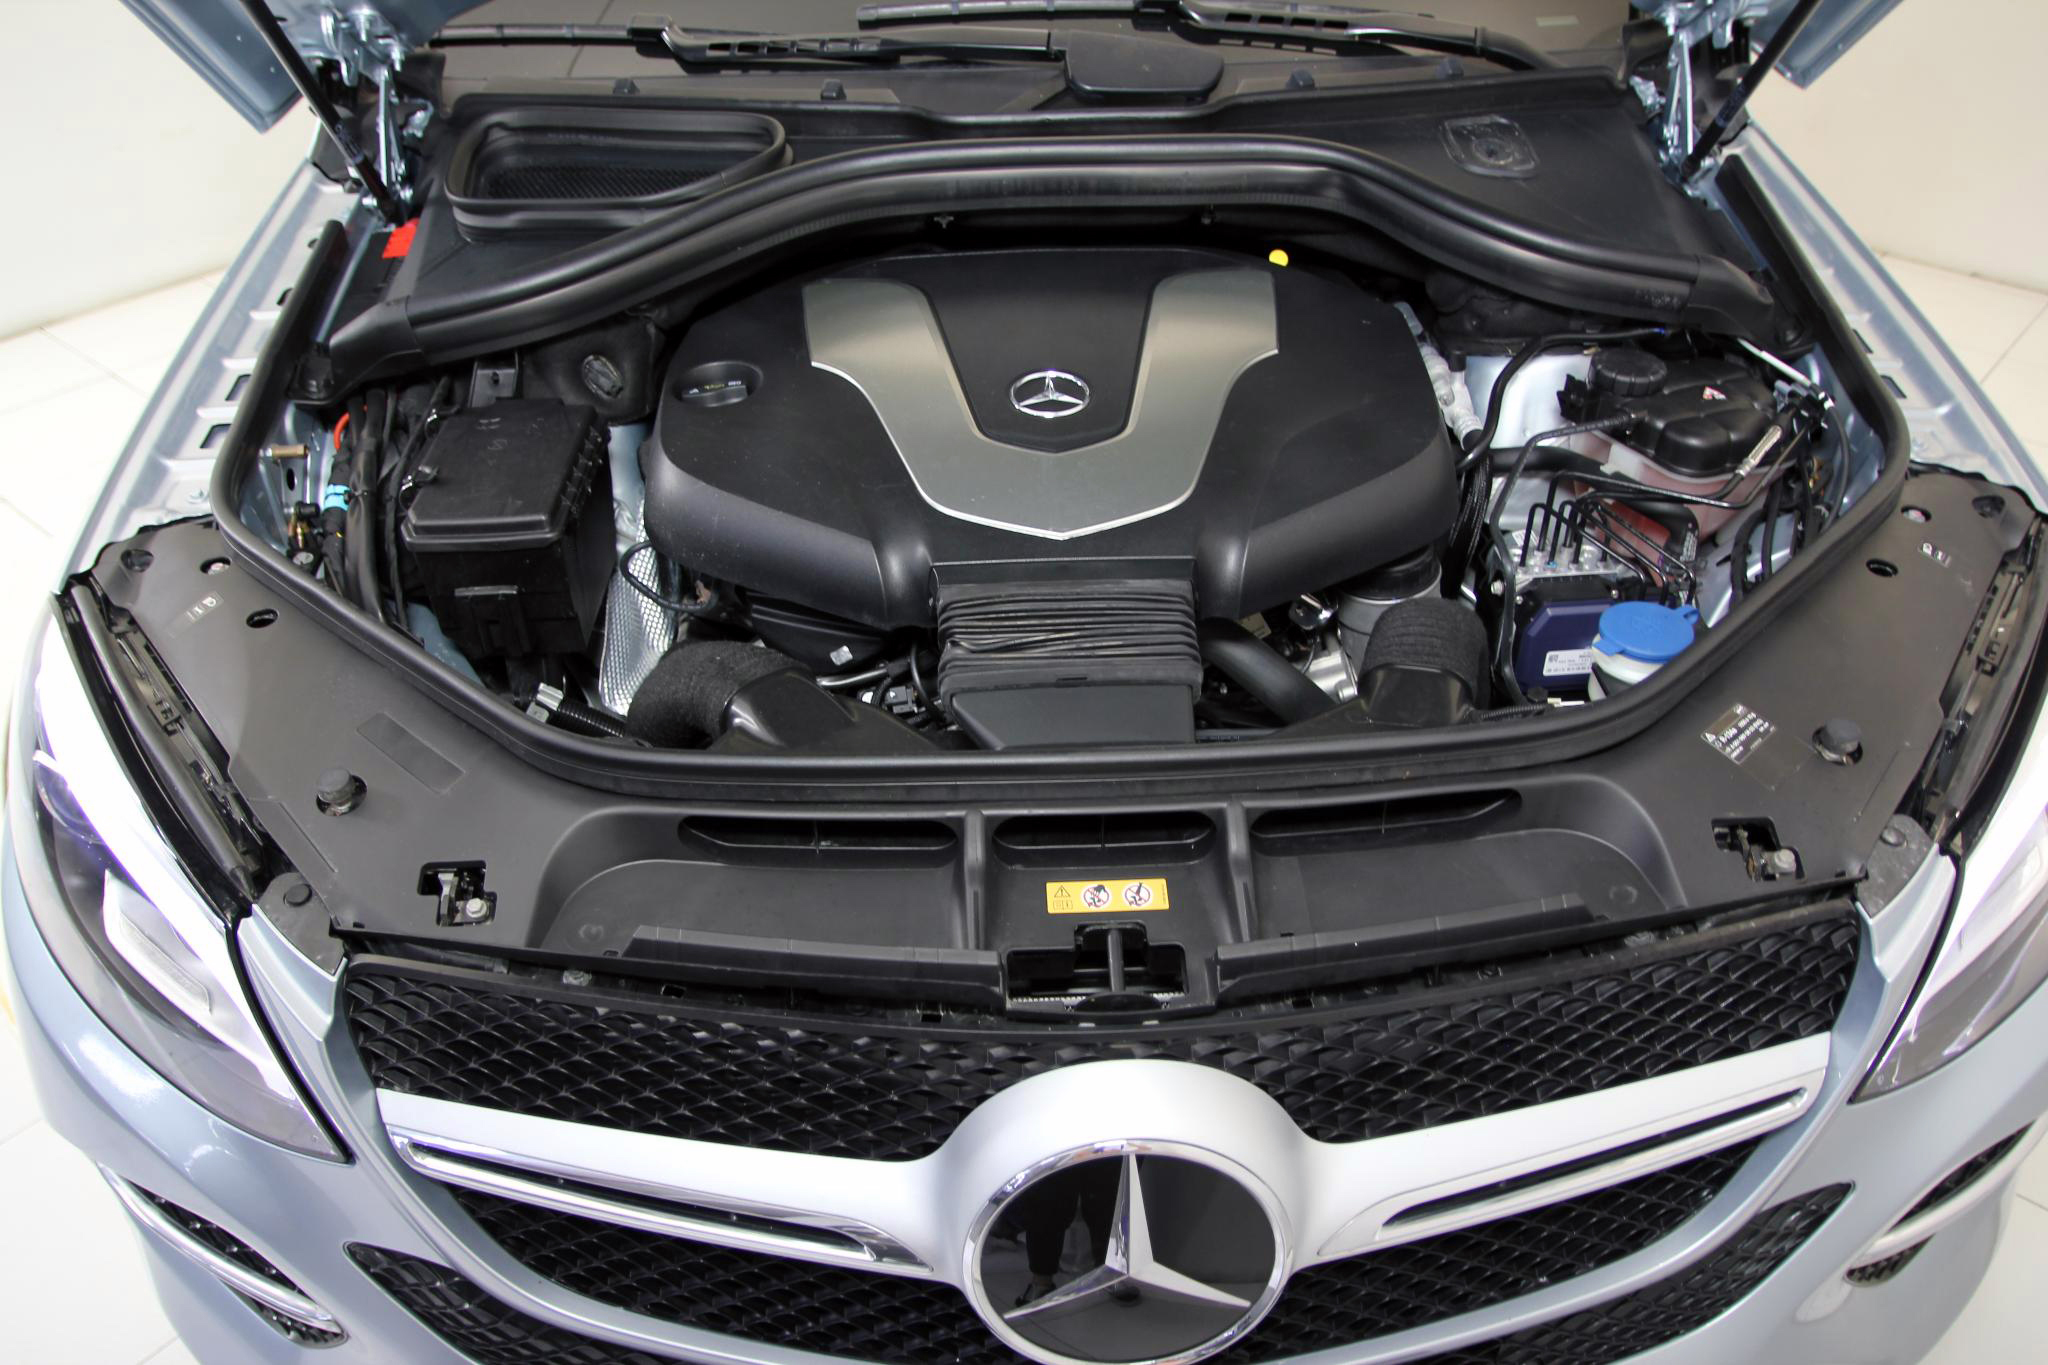 Mercedes-Benz Clase GLE GLE COUPE 350 D 4MATIC imagen 60